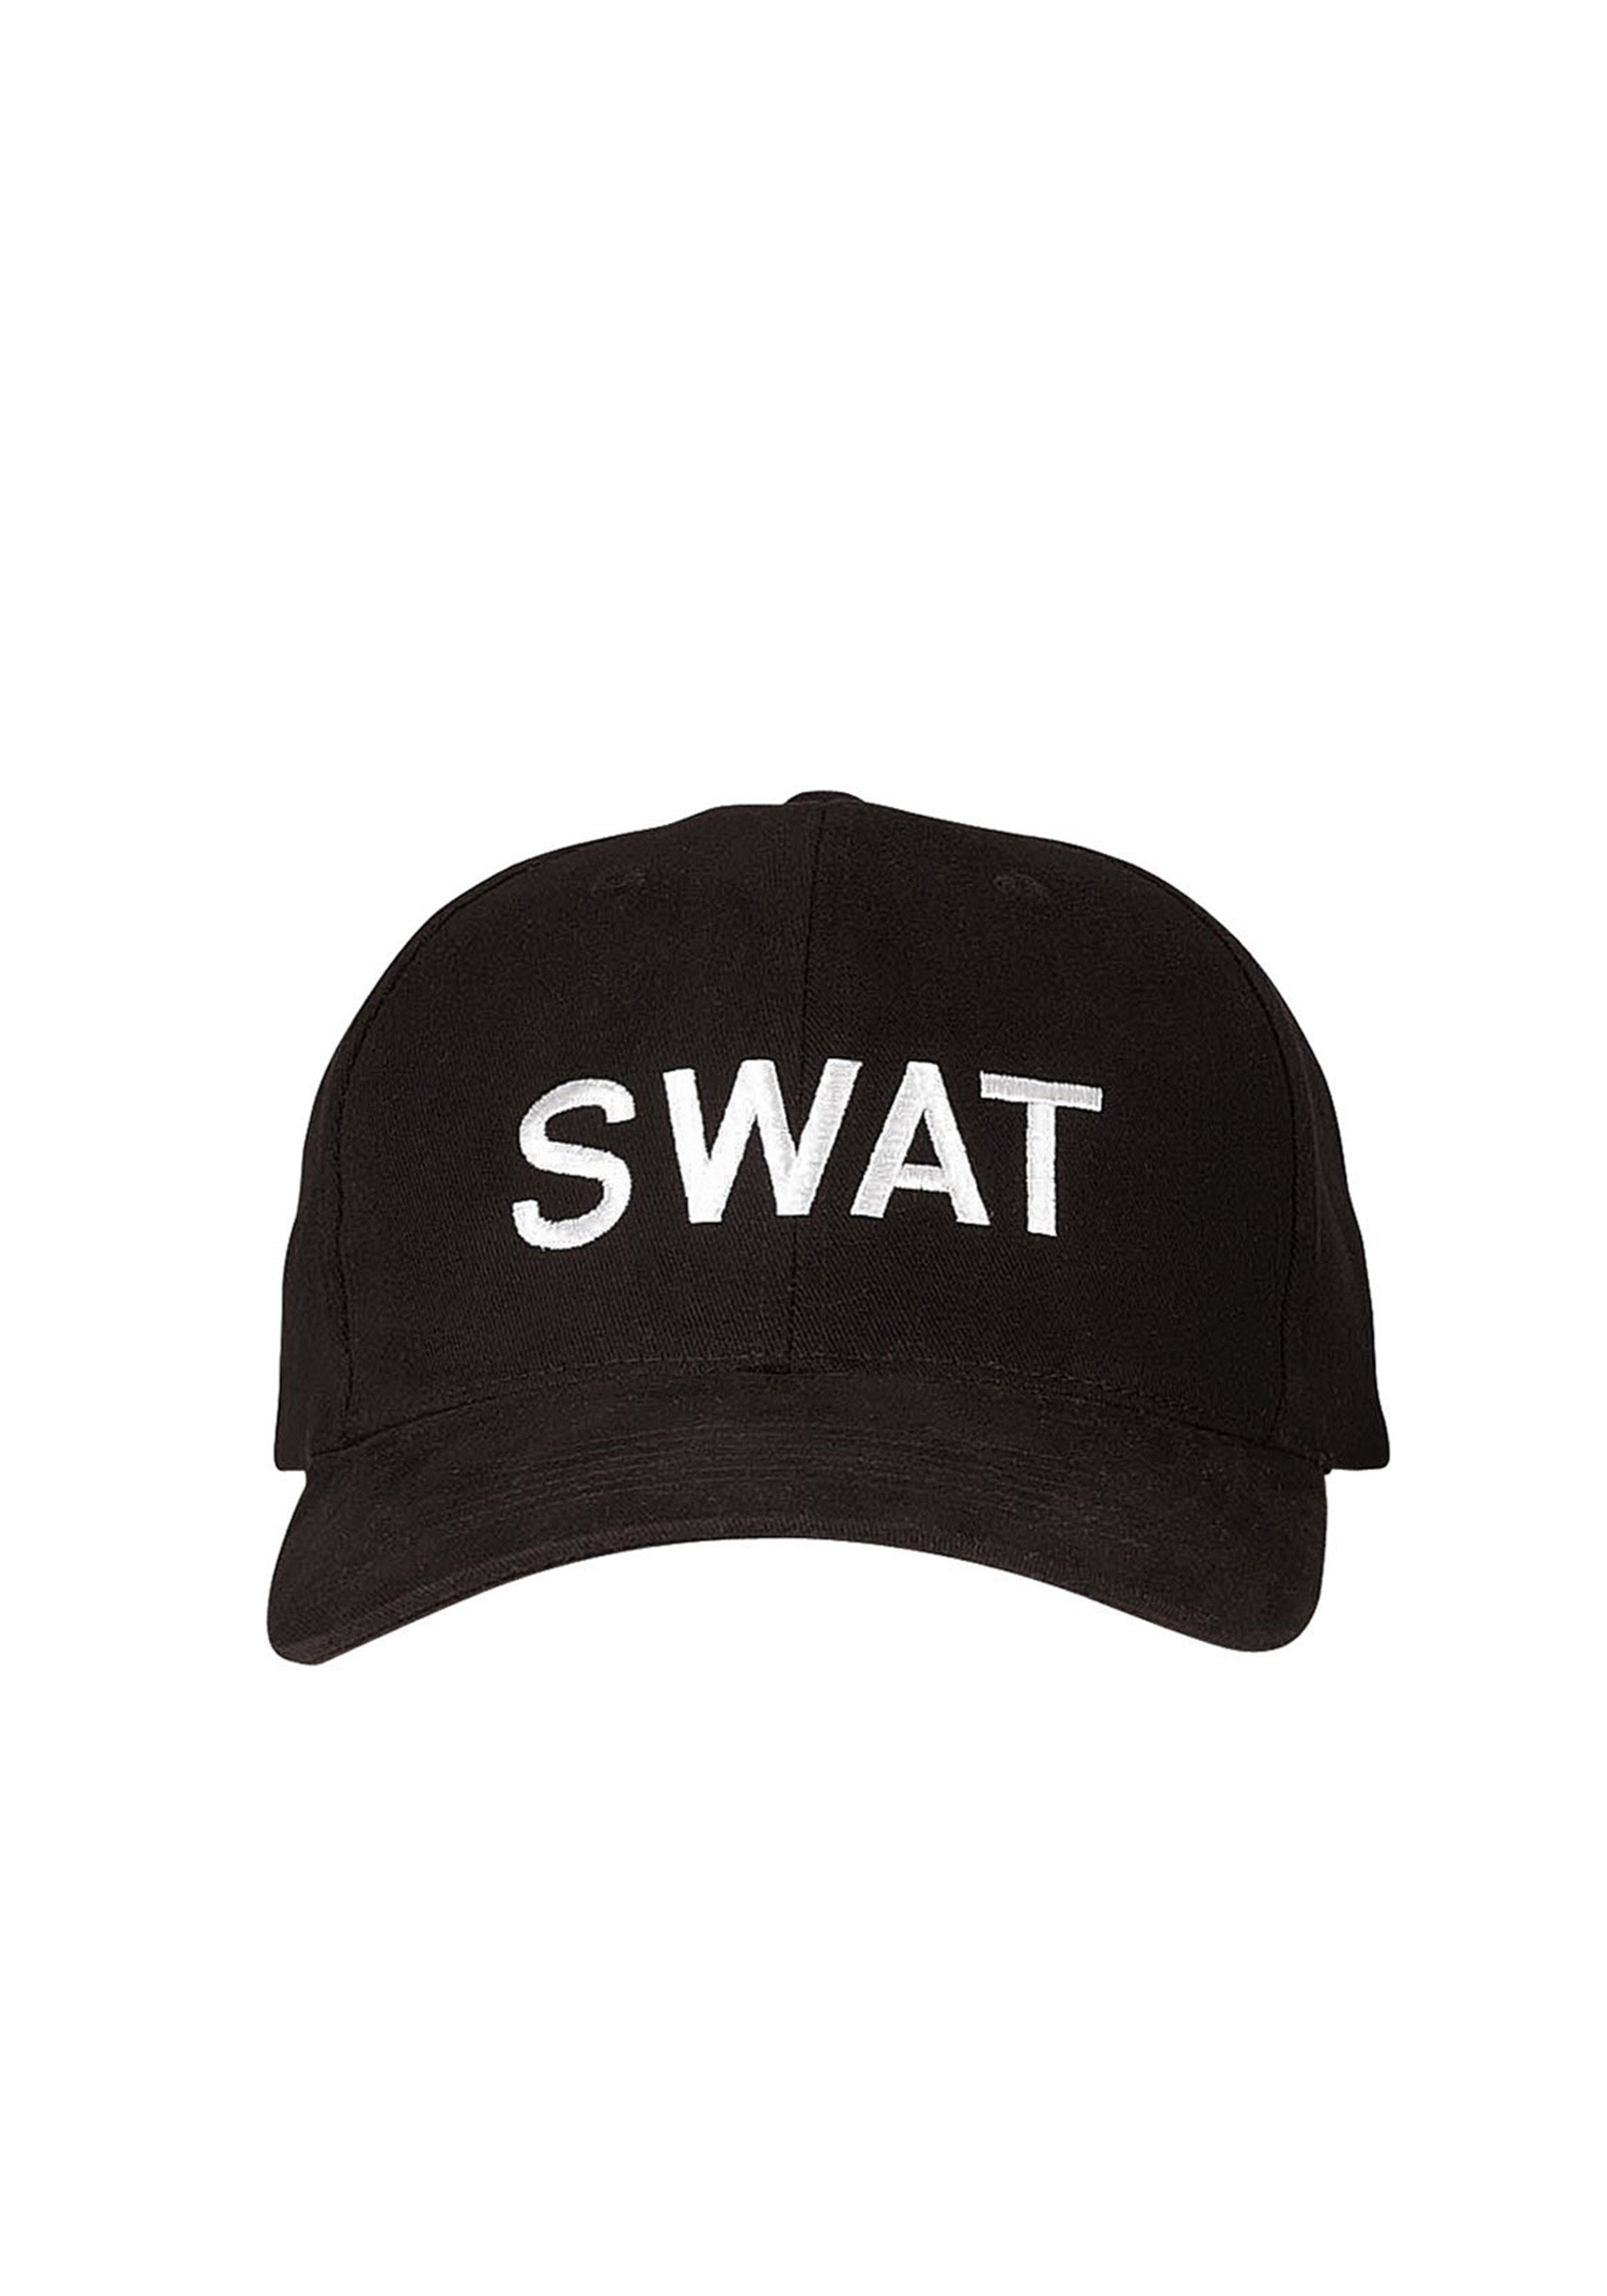 921be94ce85 Adult SWAT Baseball Cap